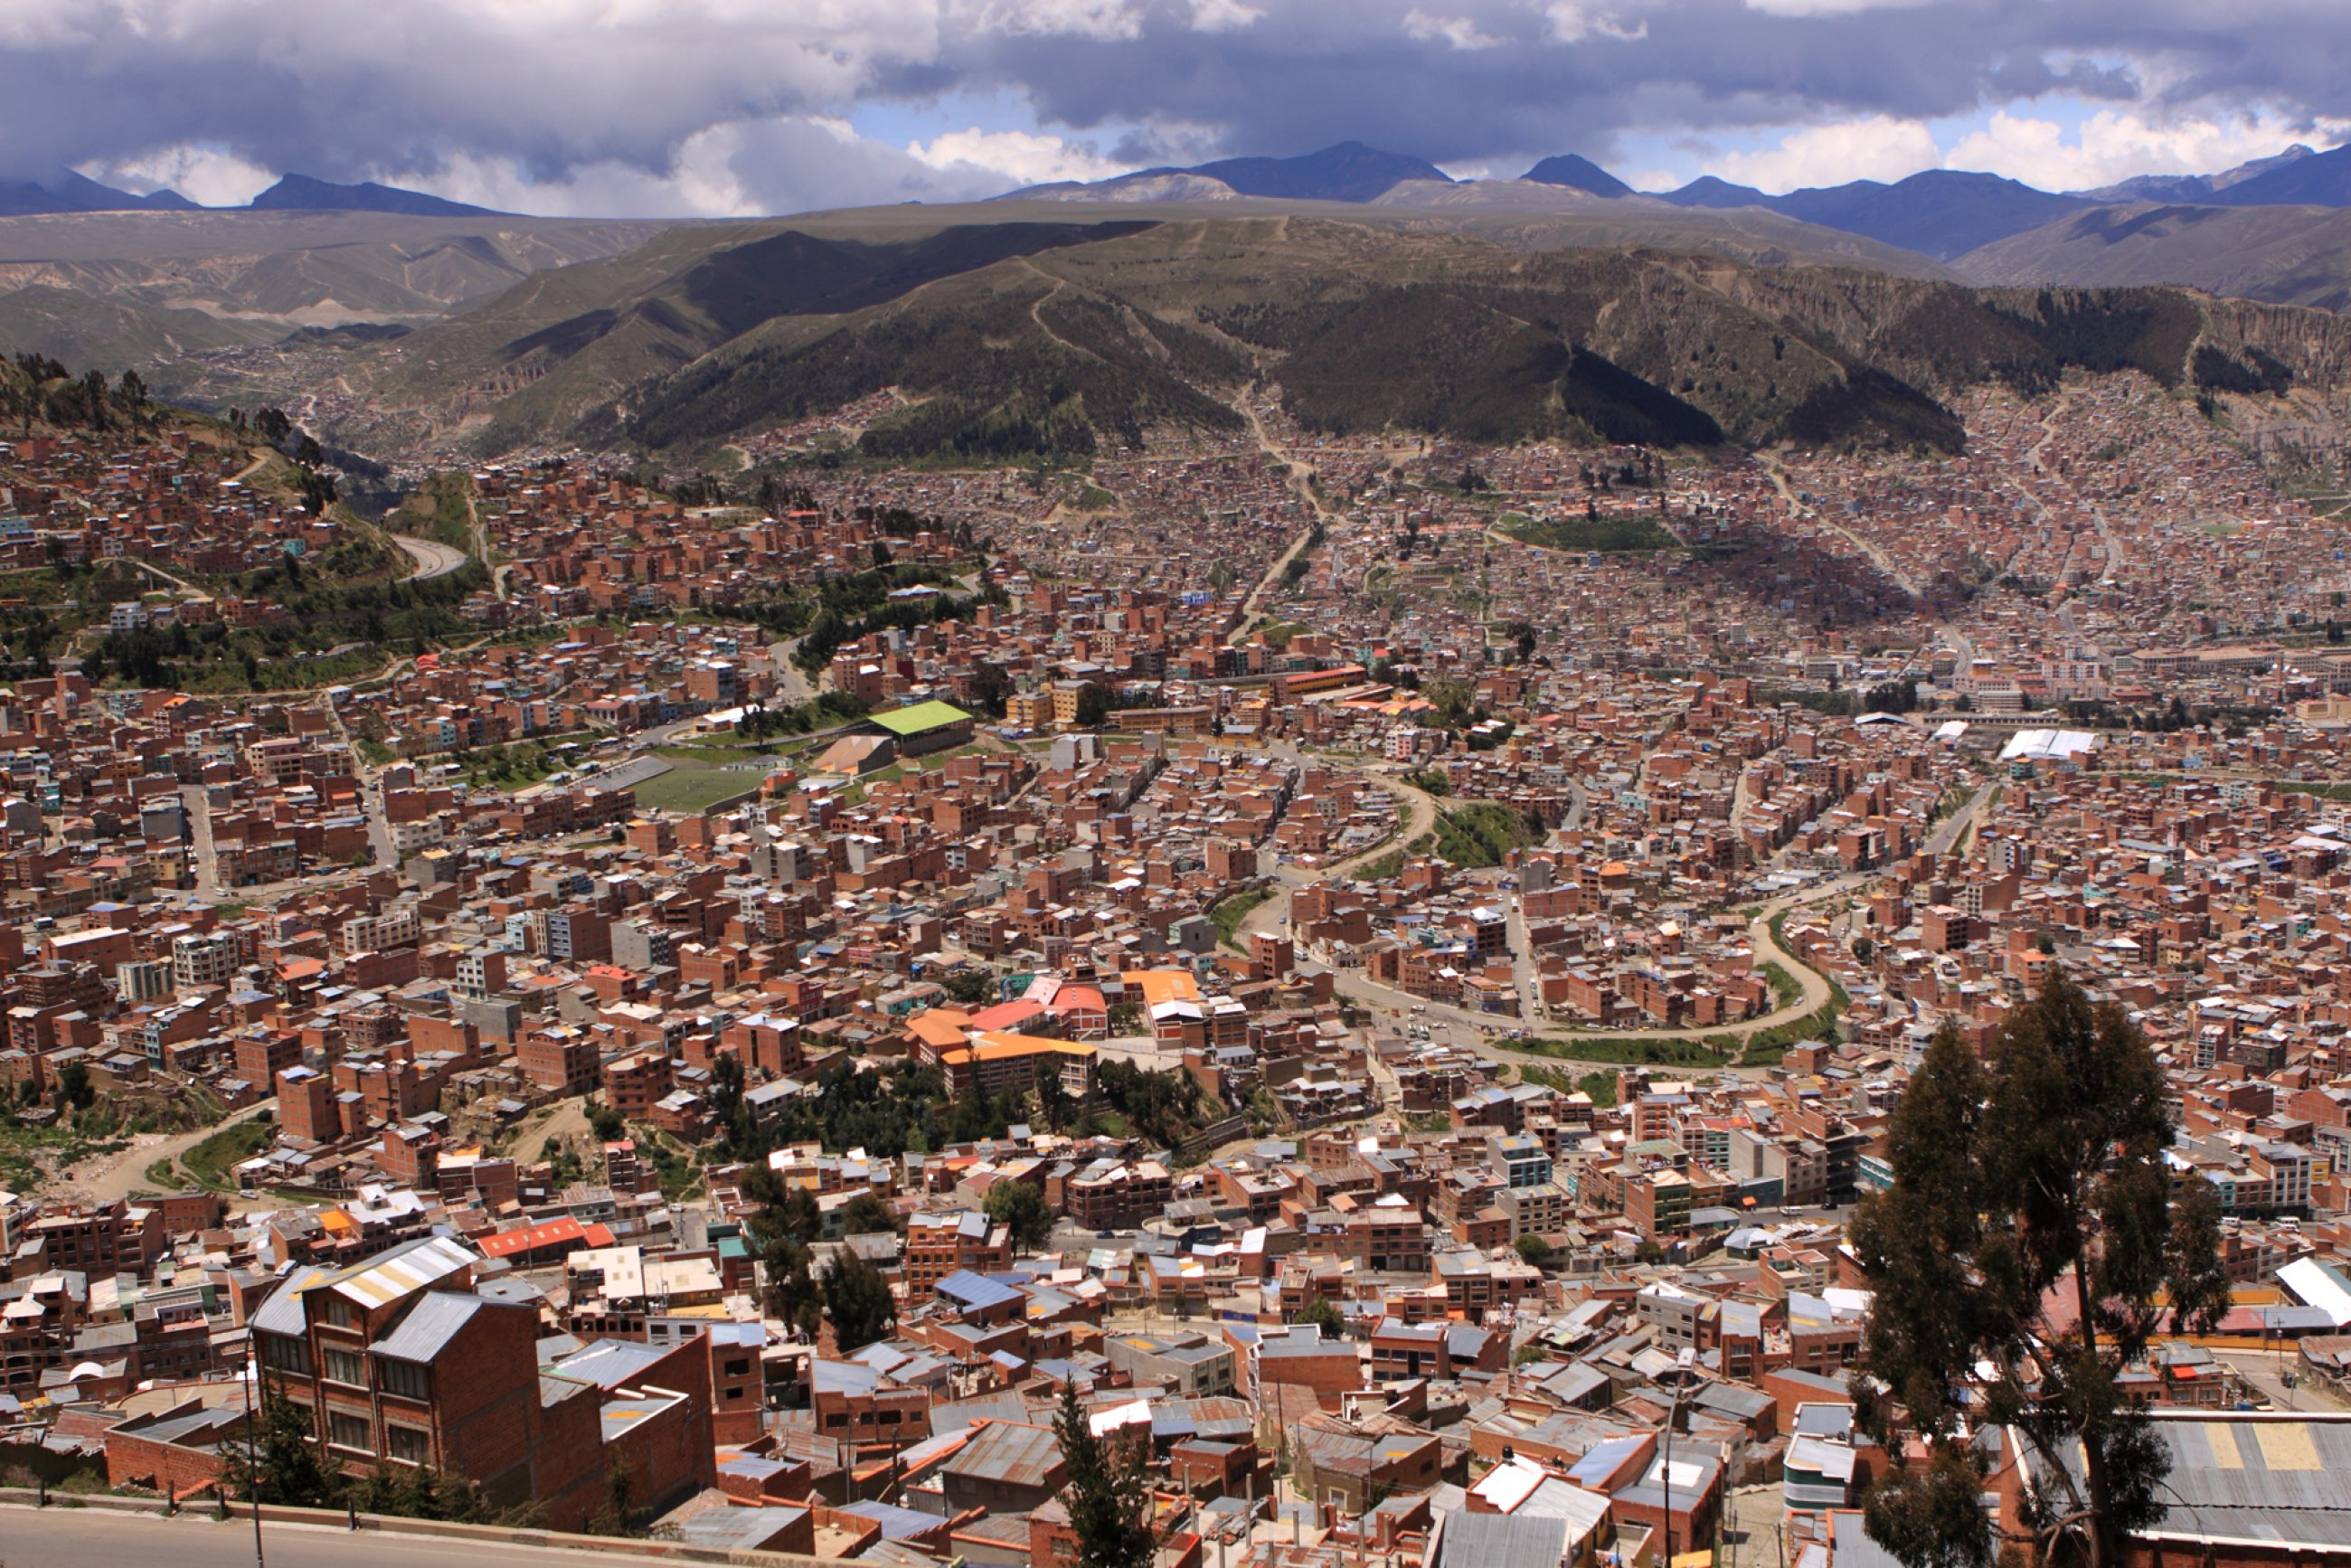 https://bubo.sk/uploads/galleries/7314/bolivia-la-paz-shutterstock-233802457-2-.jpg